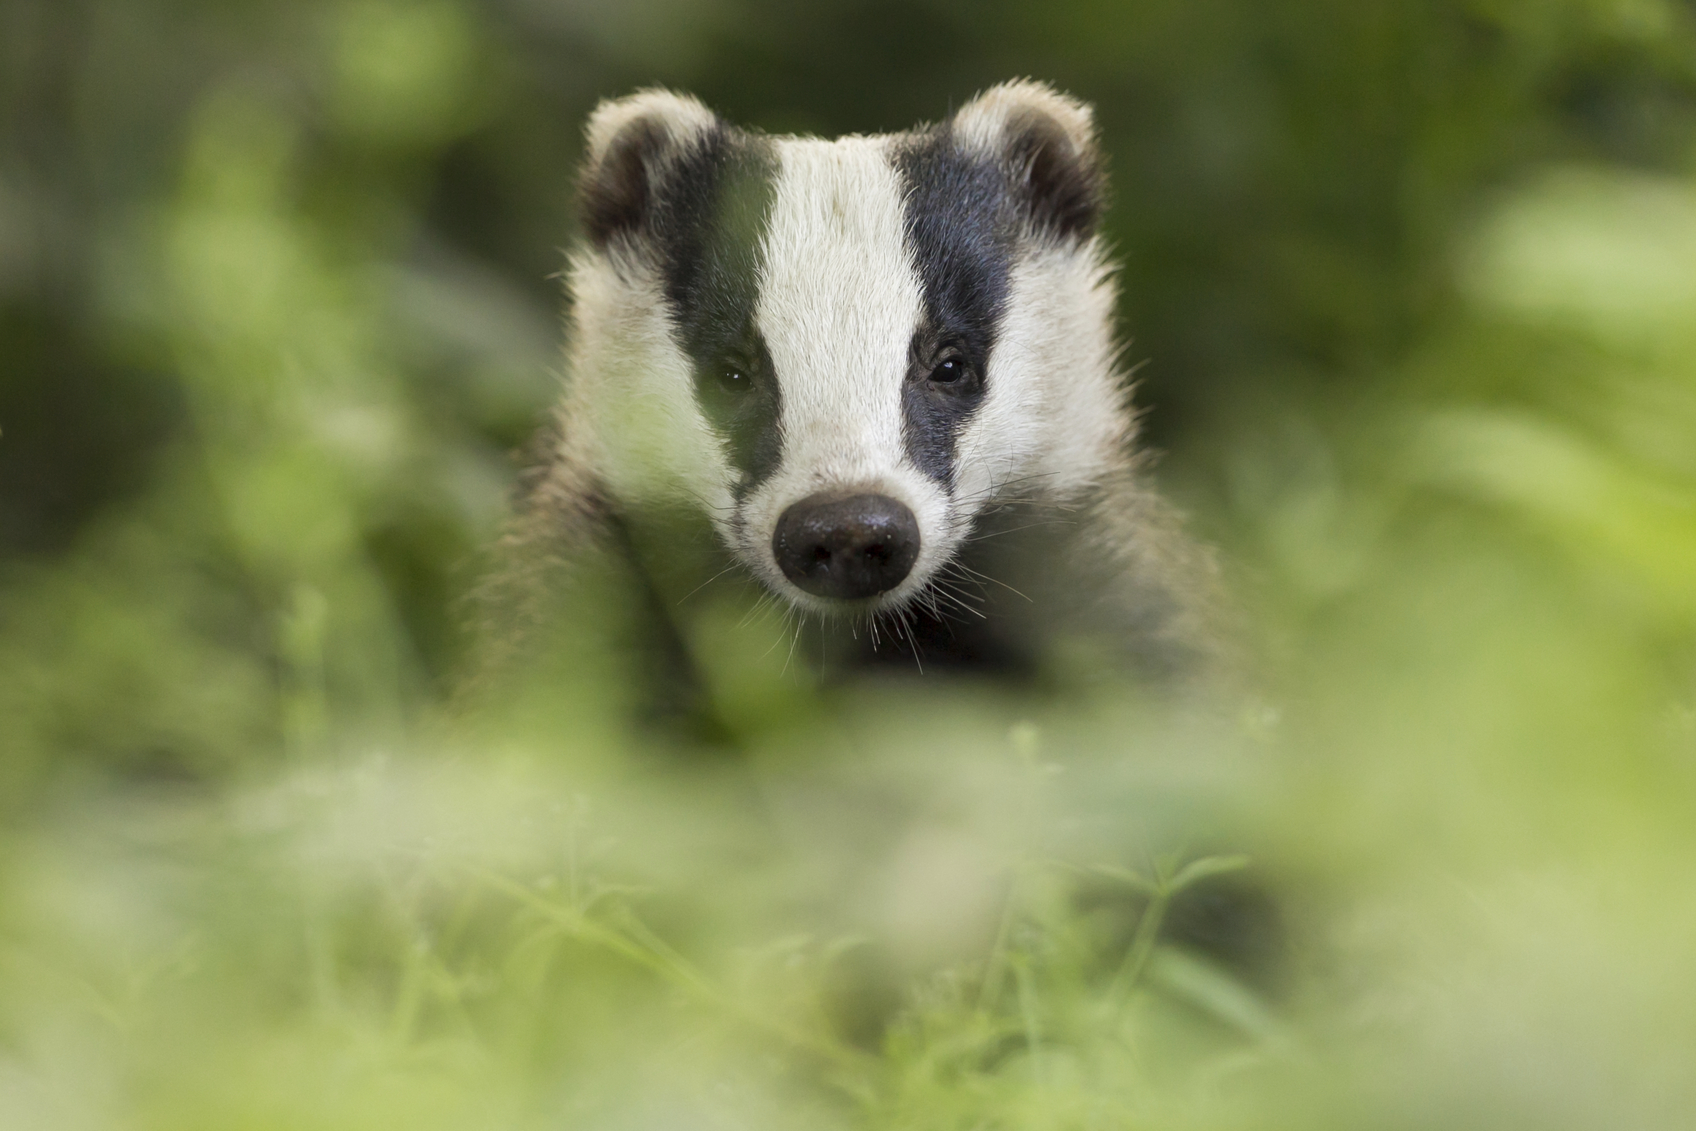 FOUR SENTENCED FOR BADGER BAITING